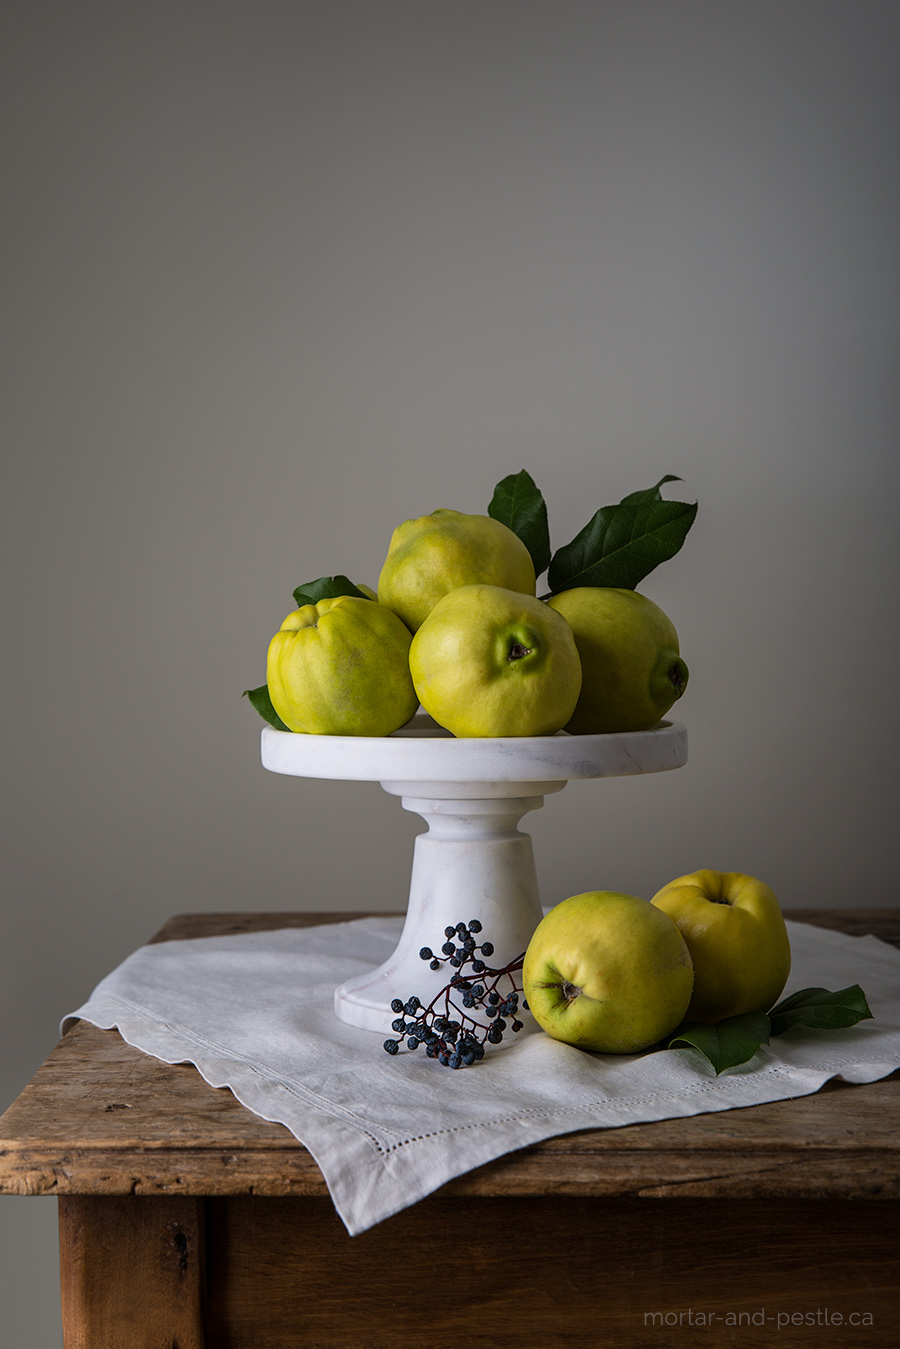 Quince paste : mortar-and-pestle.ca